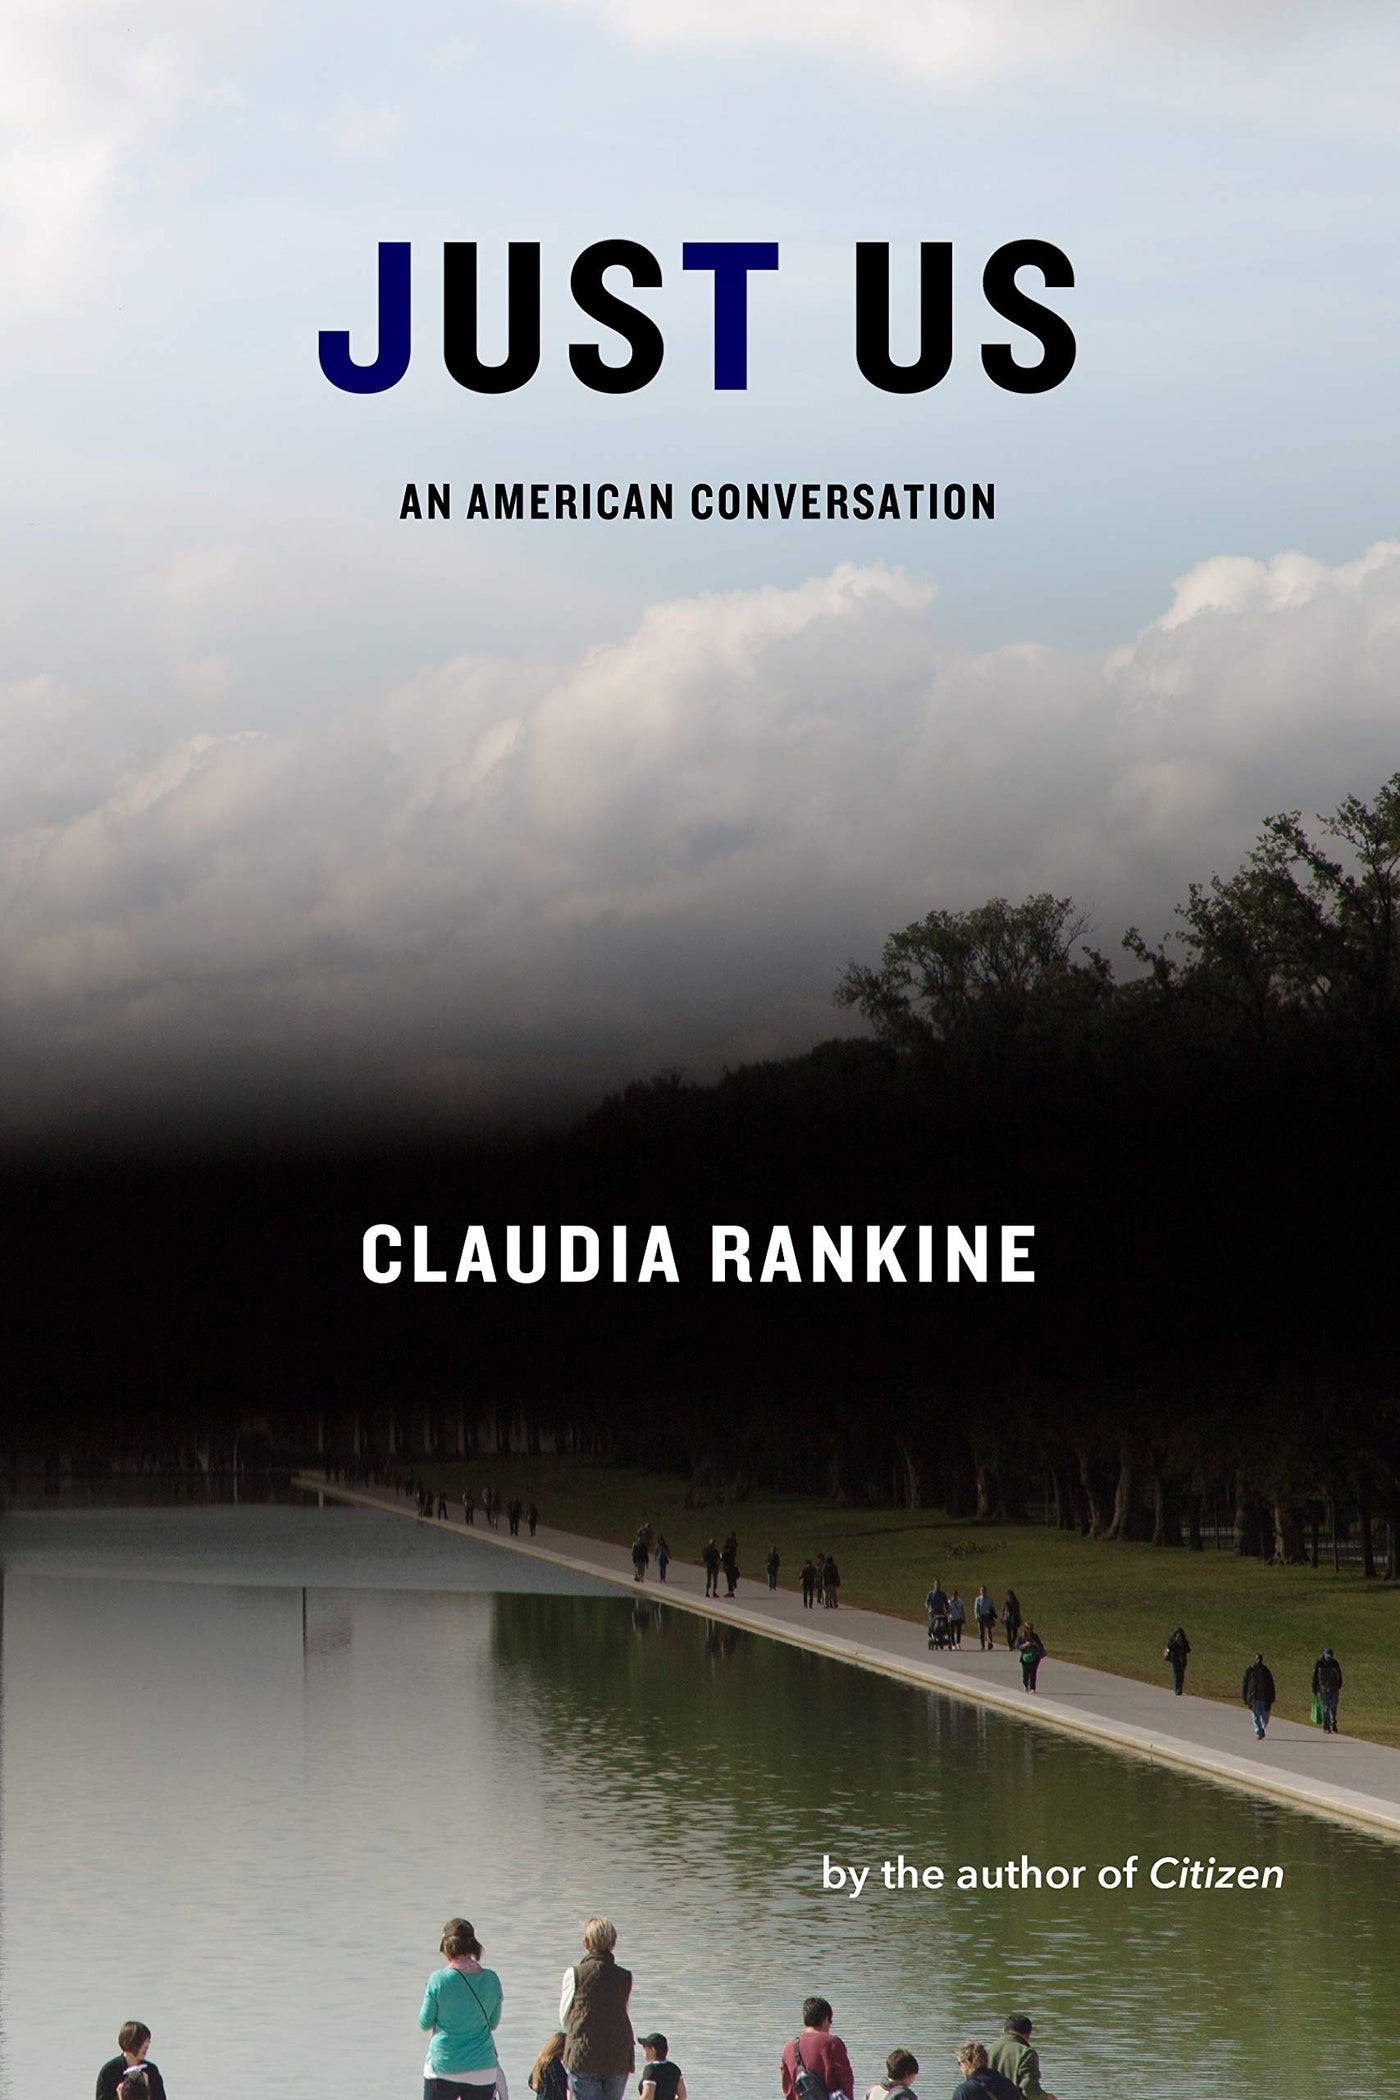 Just Us: An American Conversation by Claudia Rankine